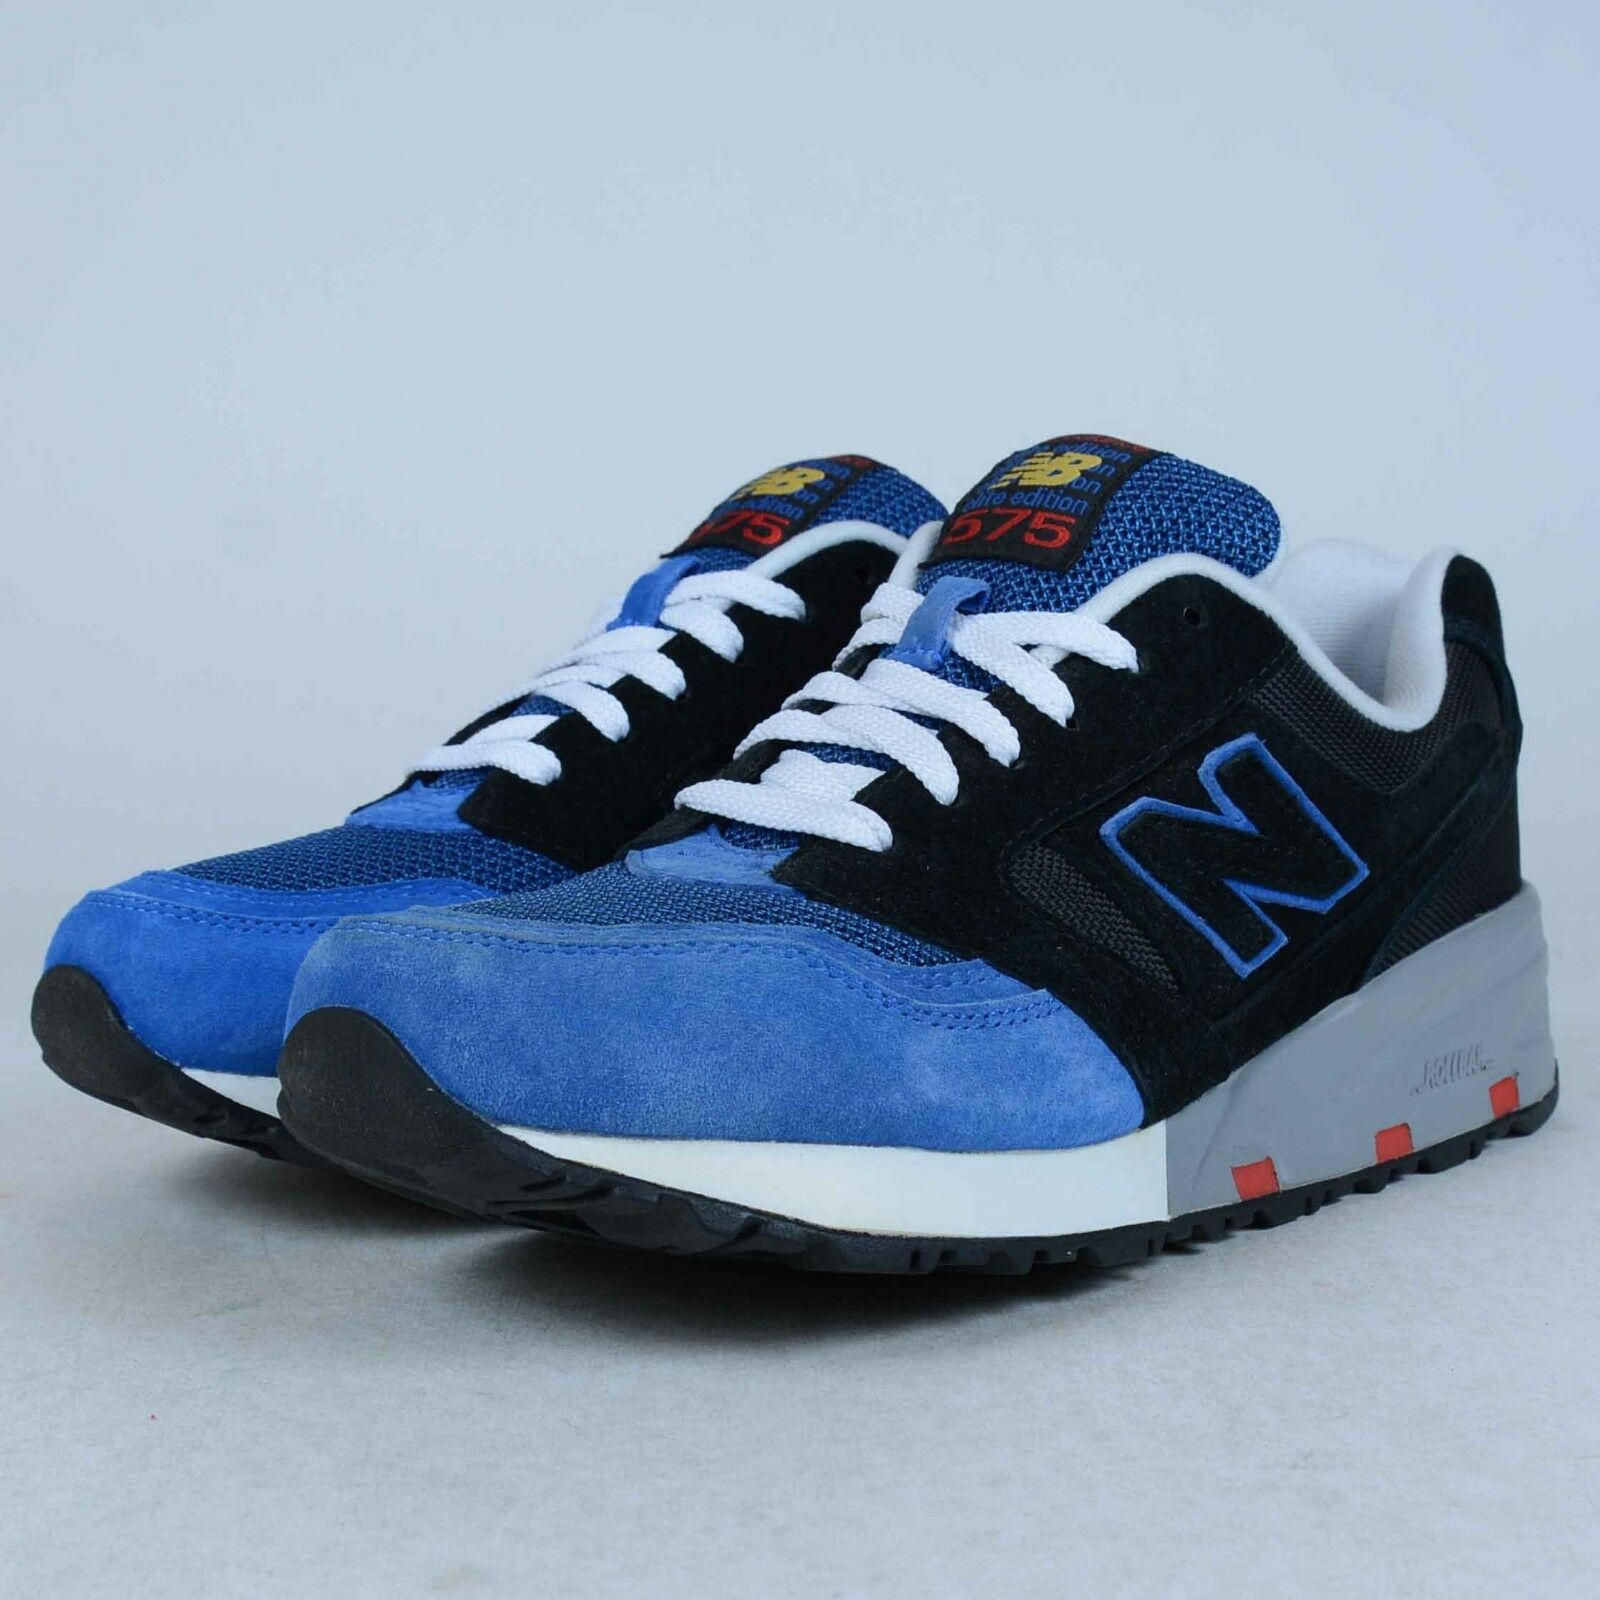 NEW BALANCE MD575EBB RUNNING SNEAKER BLUE BLACK SZ 8 DAMAGED DISPLAY